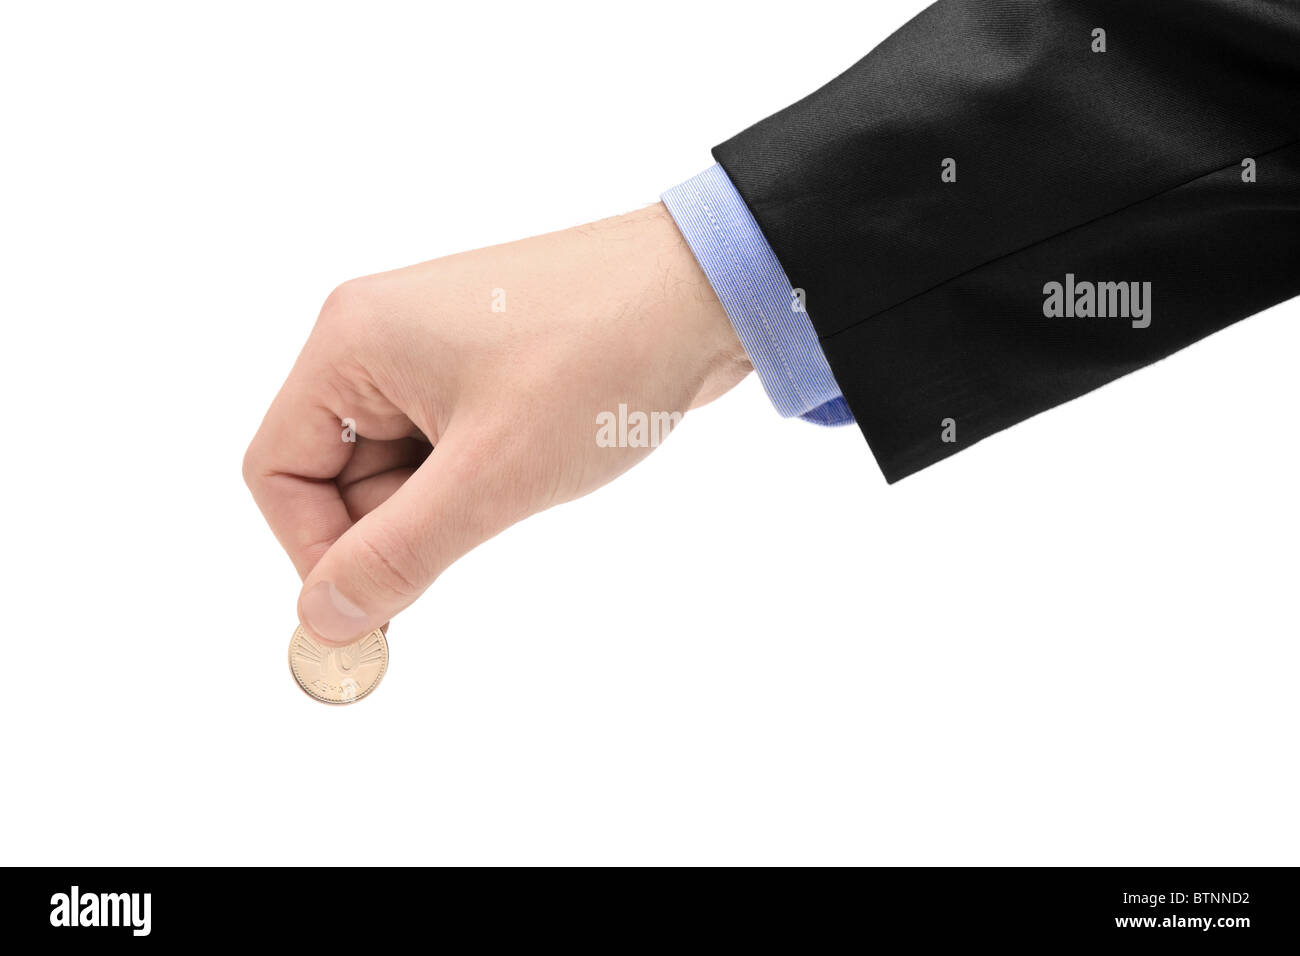 Person holding a coin - Stock Image